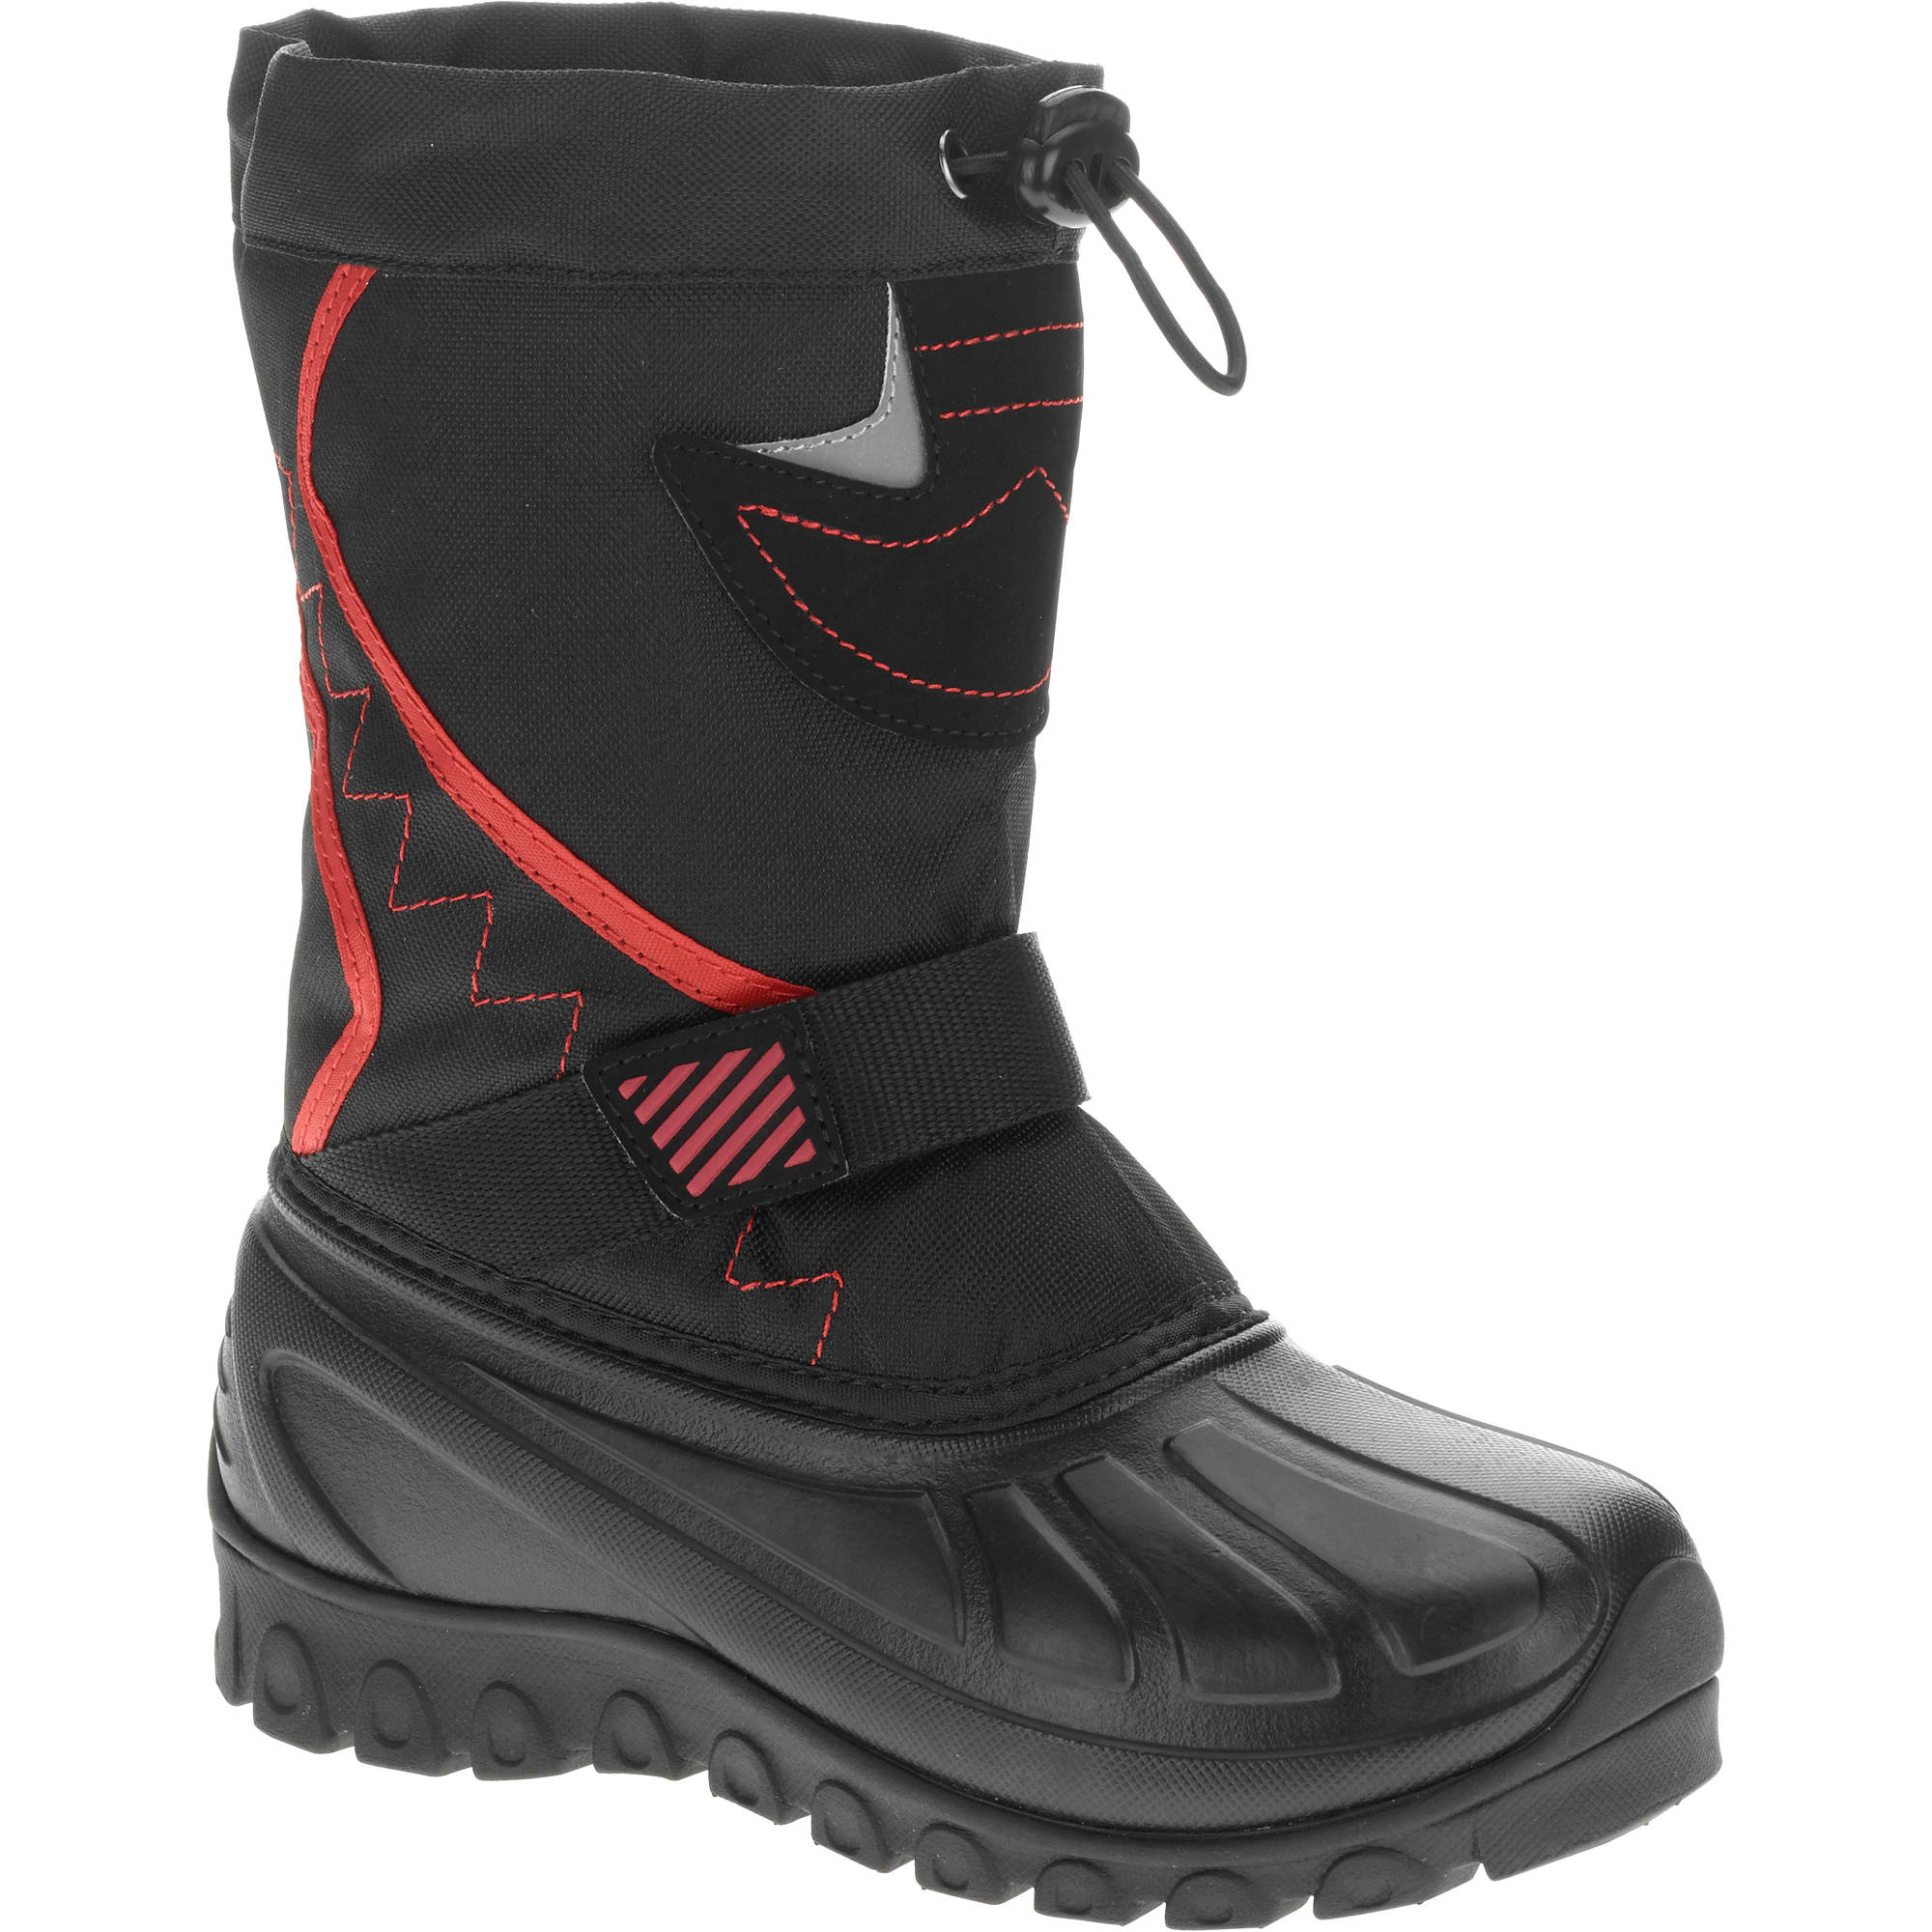 Ozark Trail Boys' Temp Rated Winter Boot -Exclusive Color